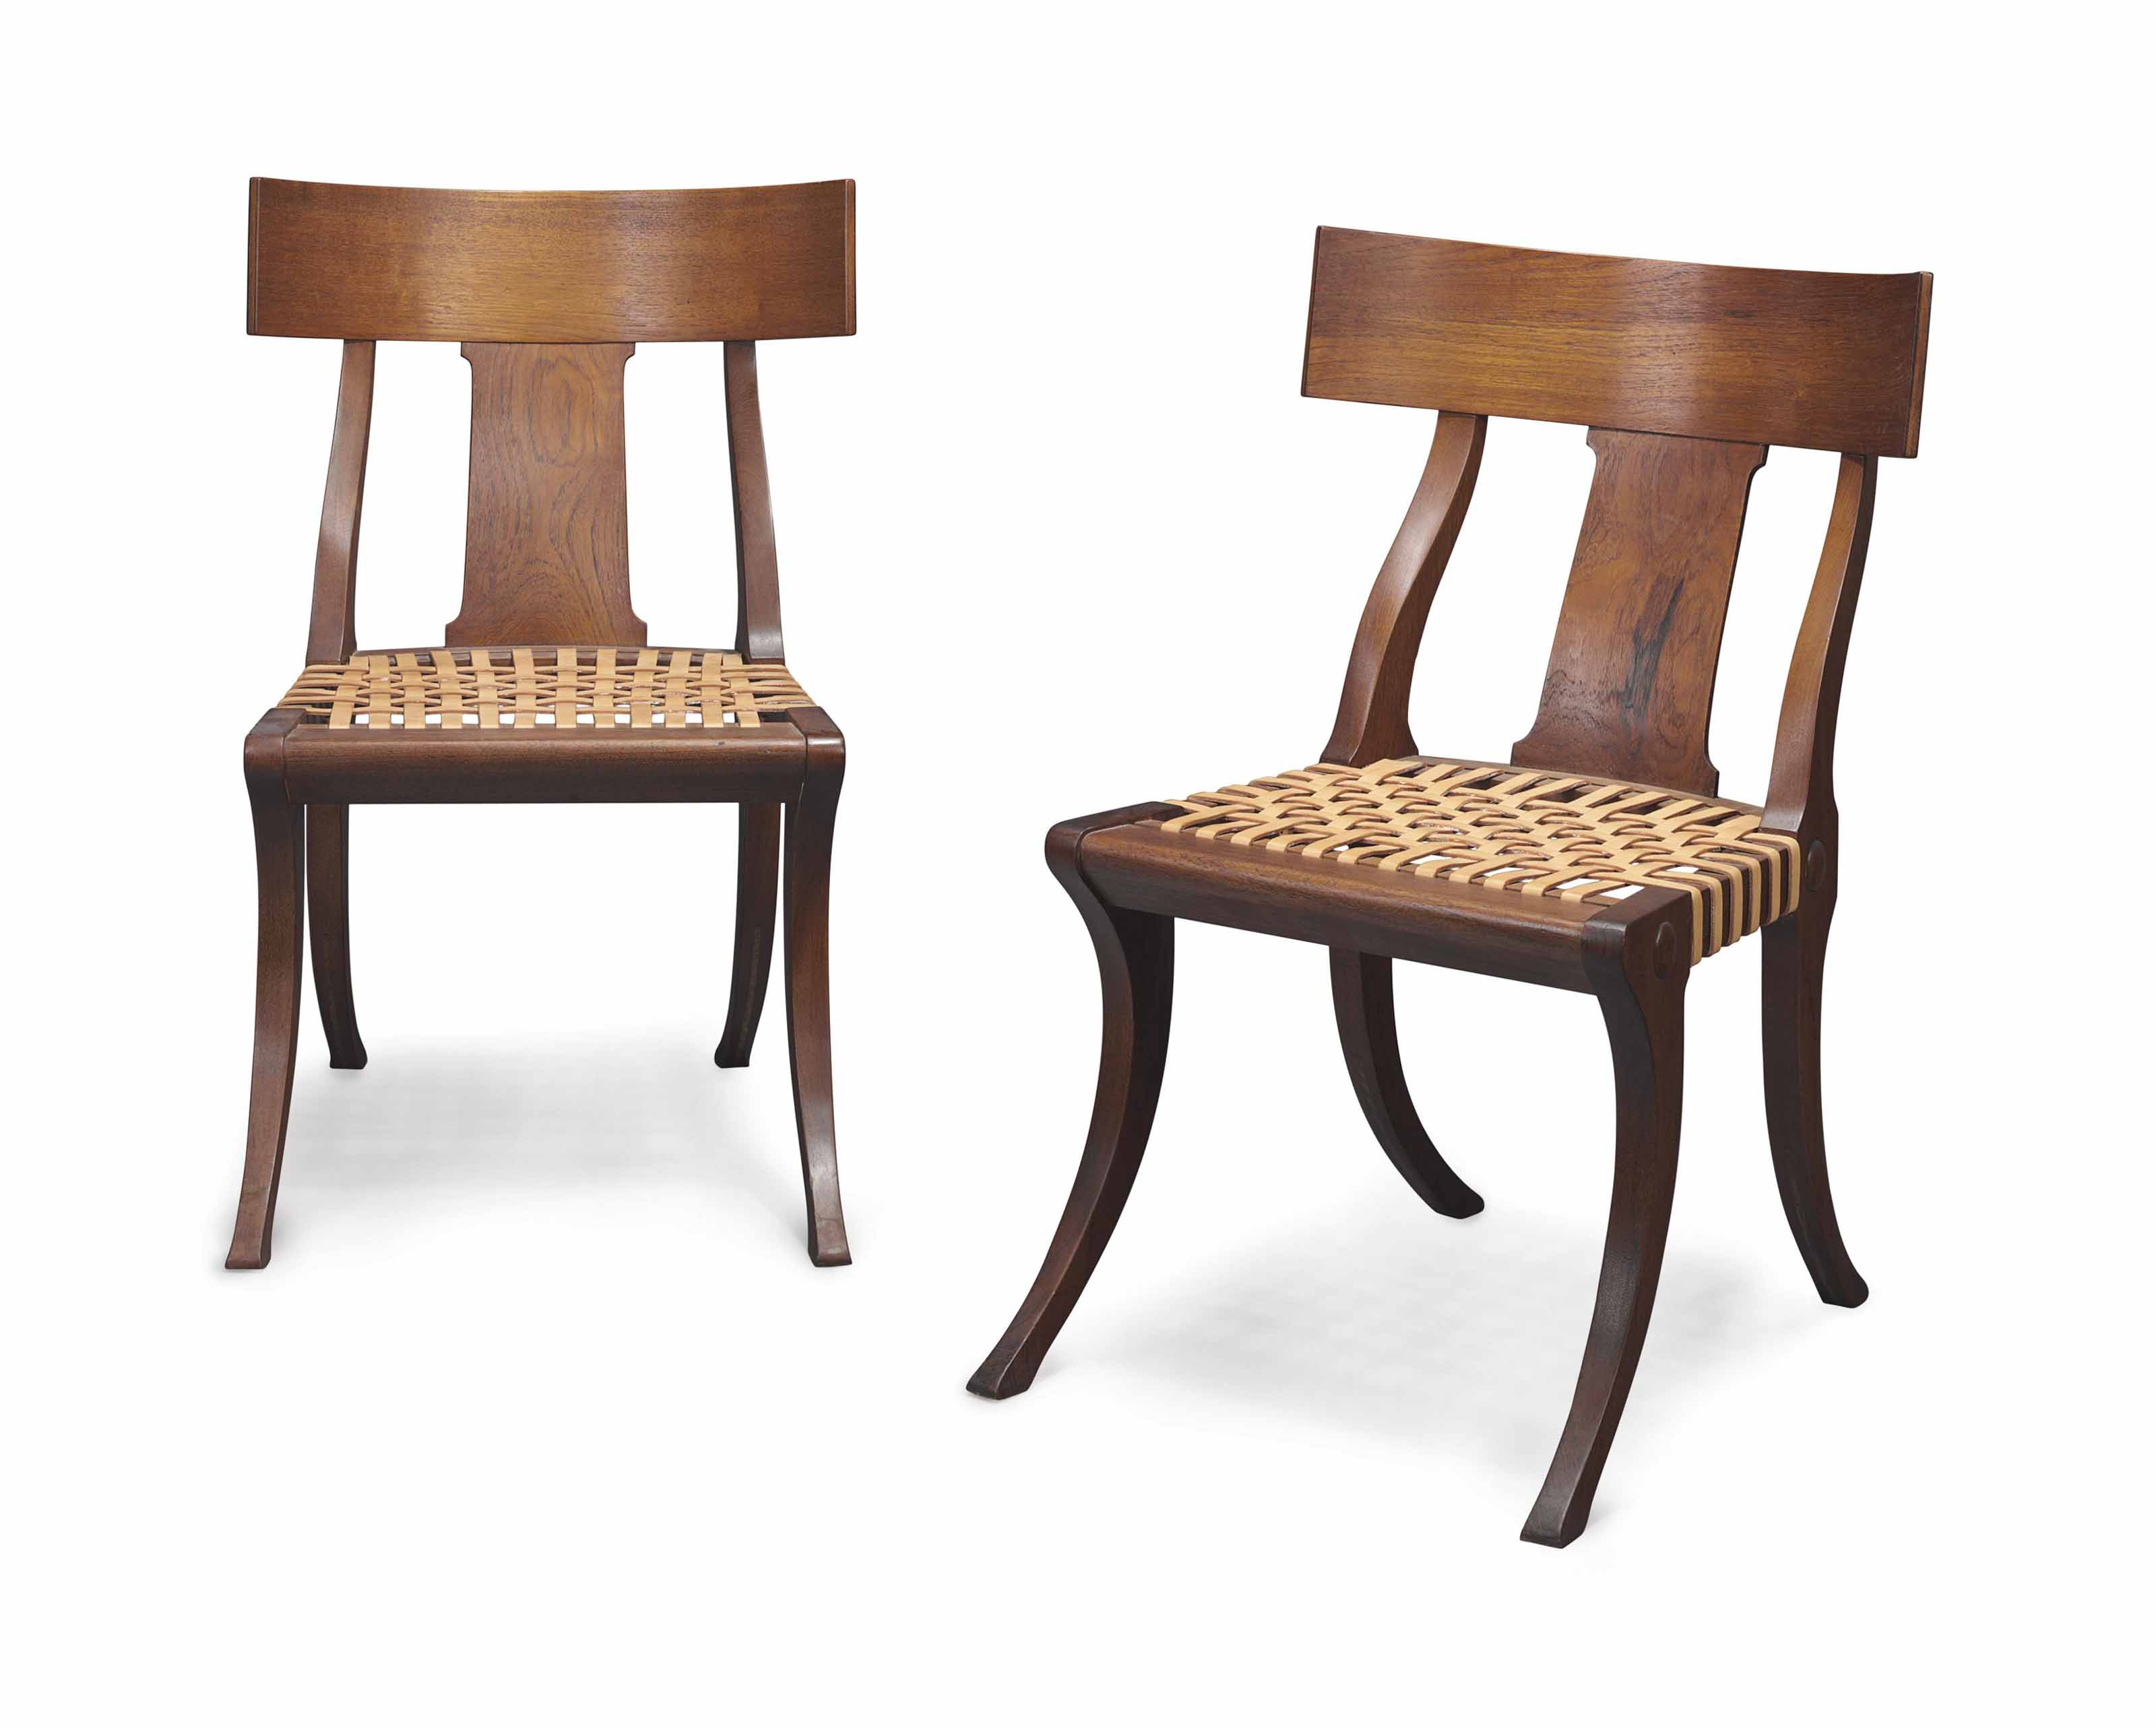 Groovy A Pair Of Klismos Chairs By Jamb Modern Chair Wood Unemploymentrelief Wooden Chair Designs For Living Room Unemploymentrelieforg